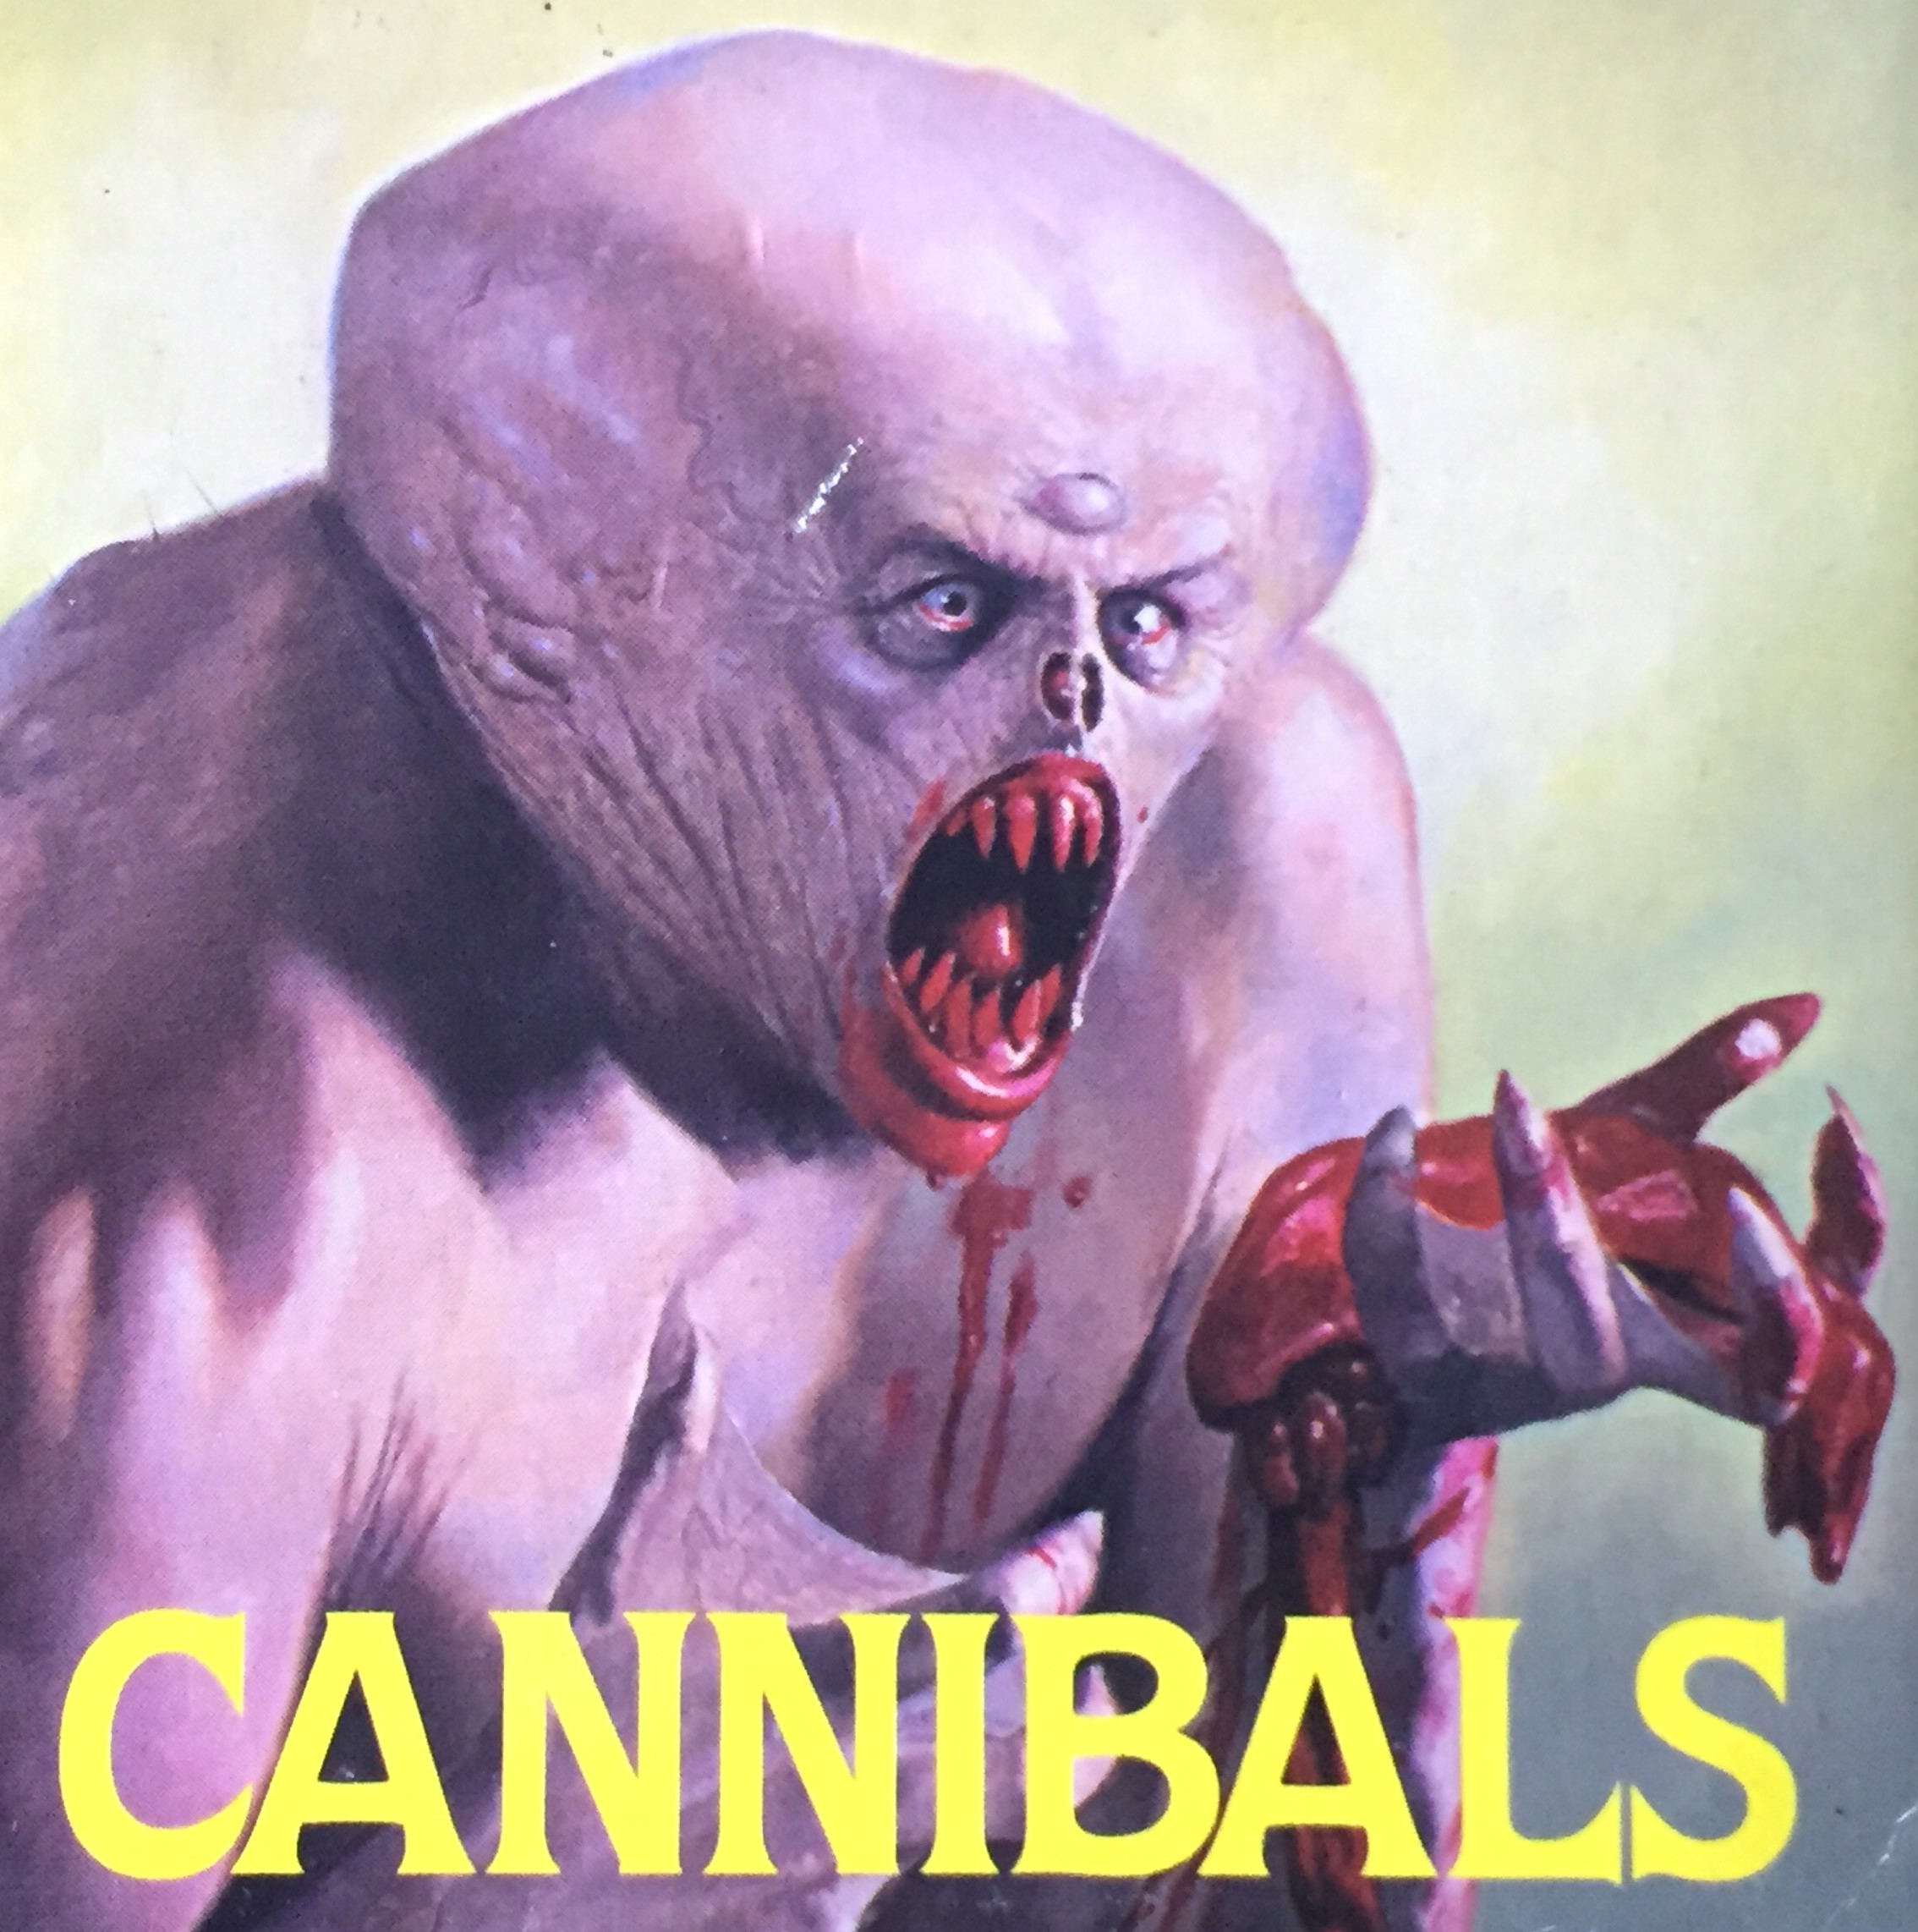 CannibalsGNS1